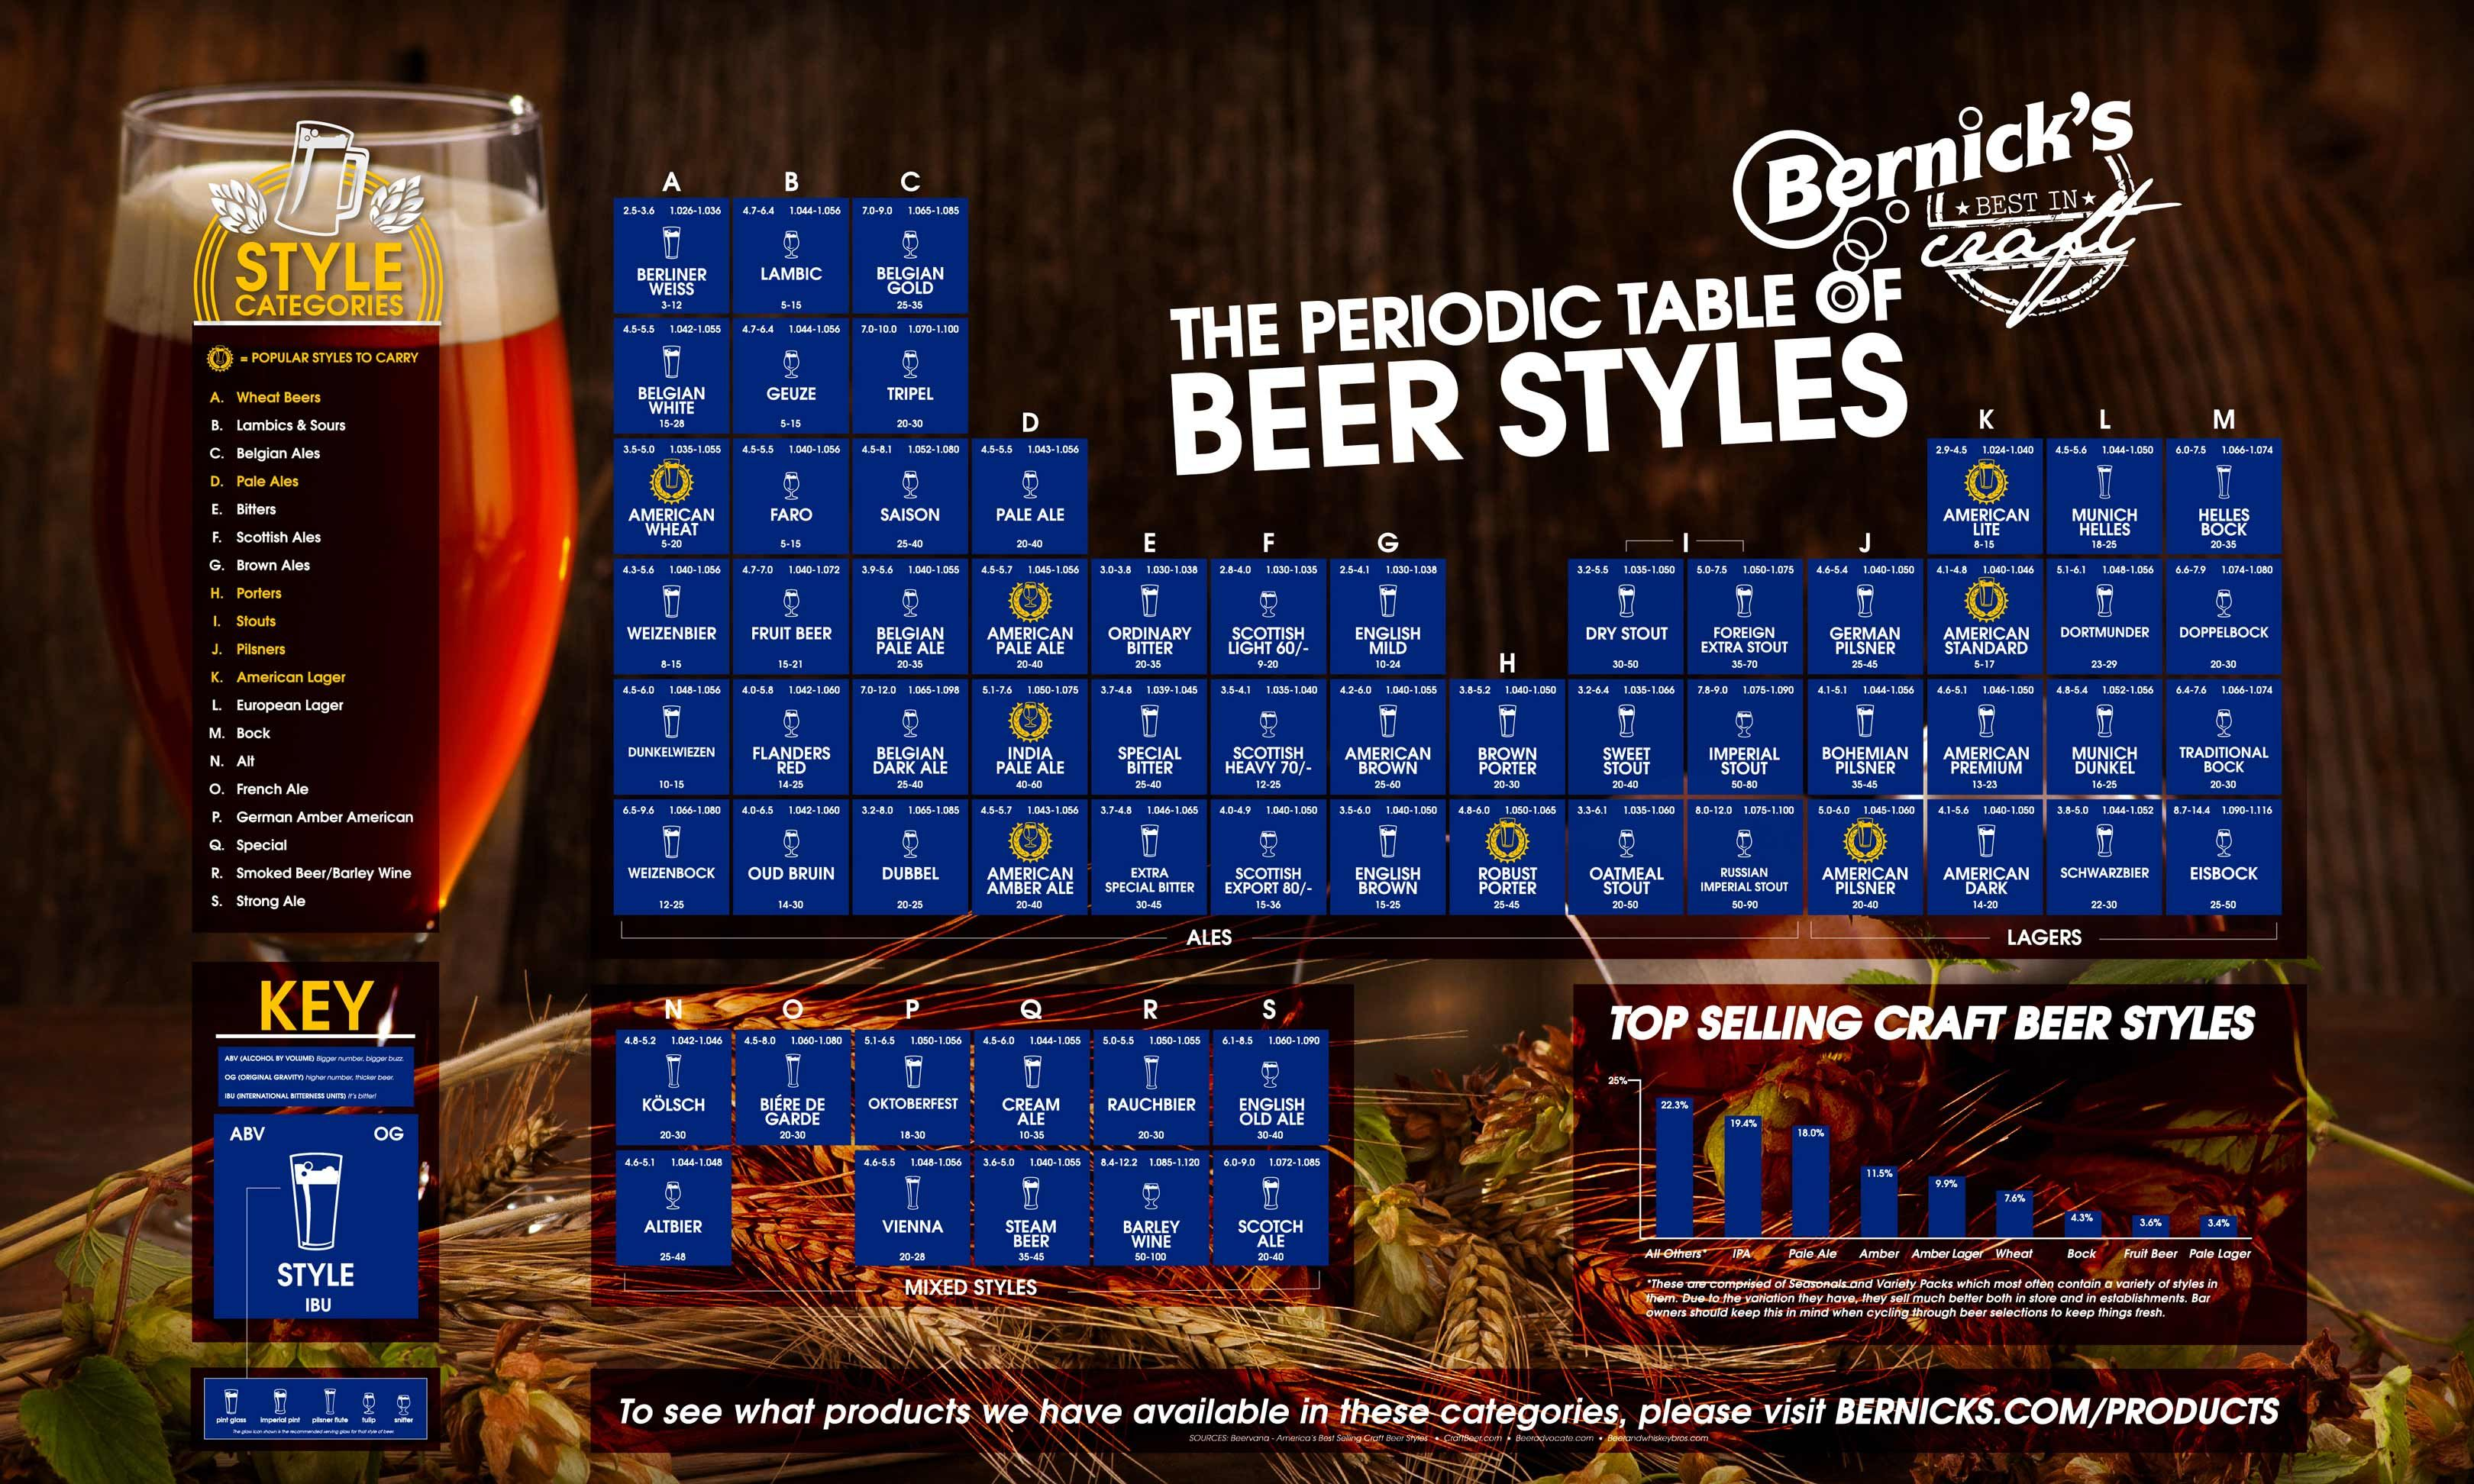 technically a periodic table is elements arranged based on configurations and properties so yes it works for a periodic table of beer as well